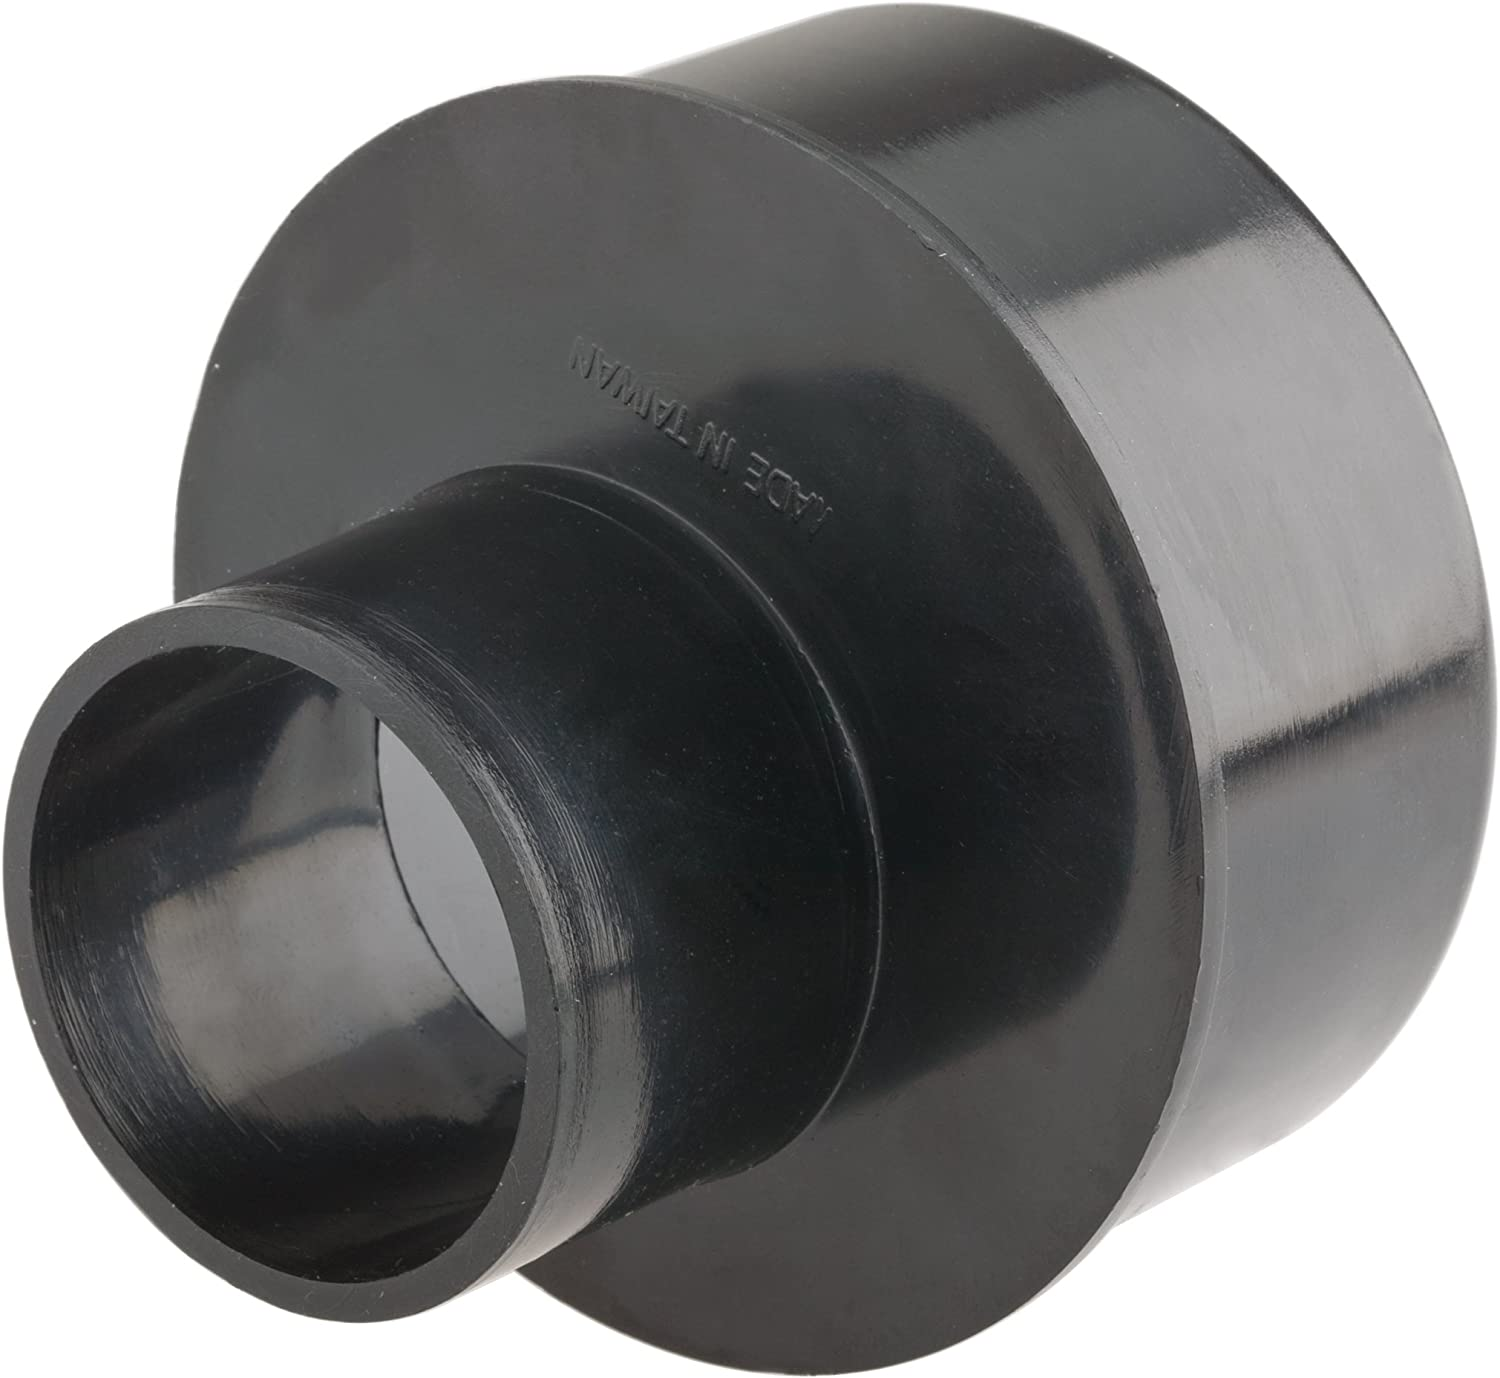 Woodstock D4225 4-Inch to 2-1/4-Inch Eccentric Reducer